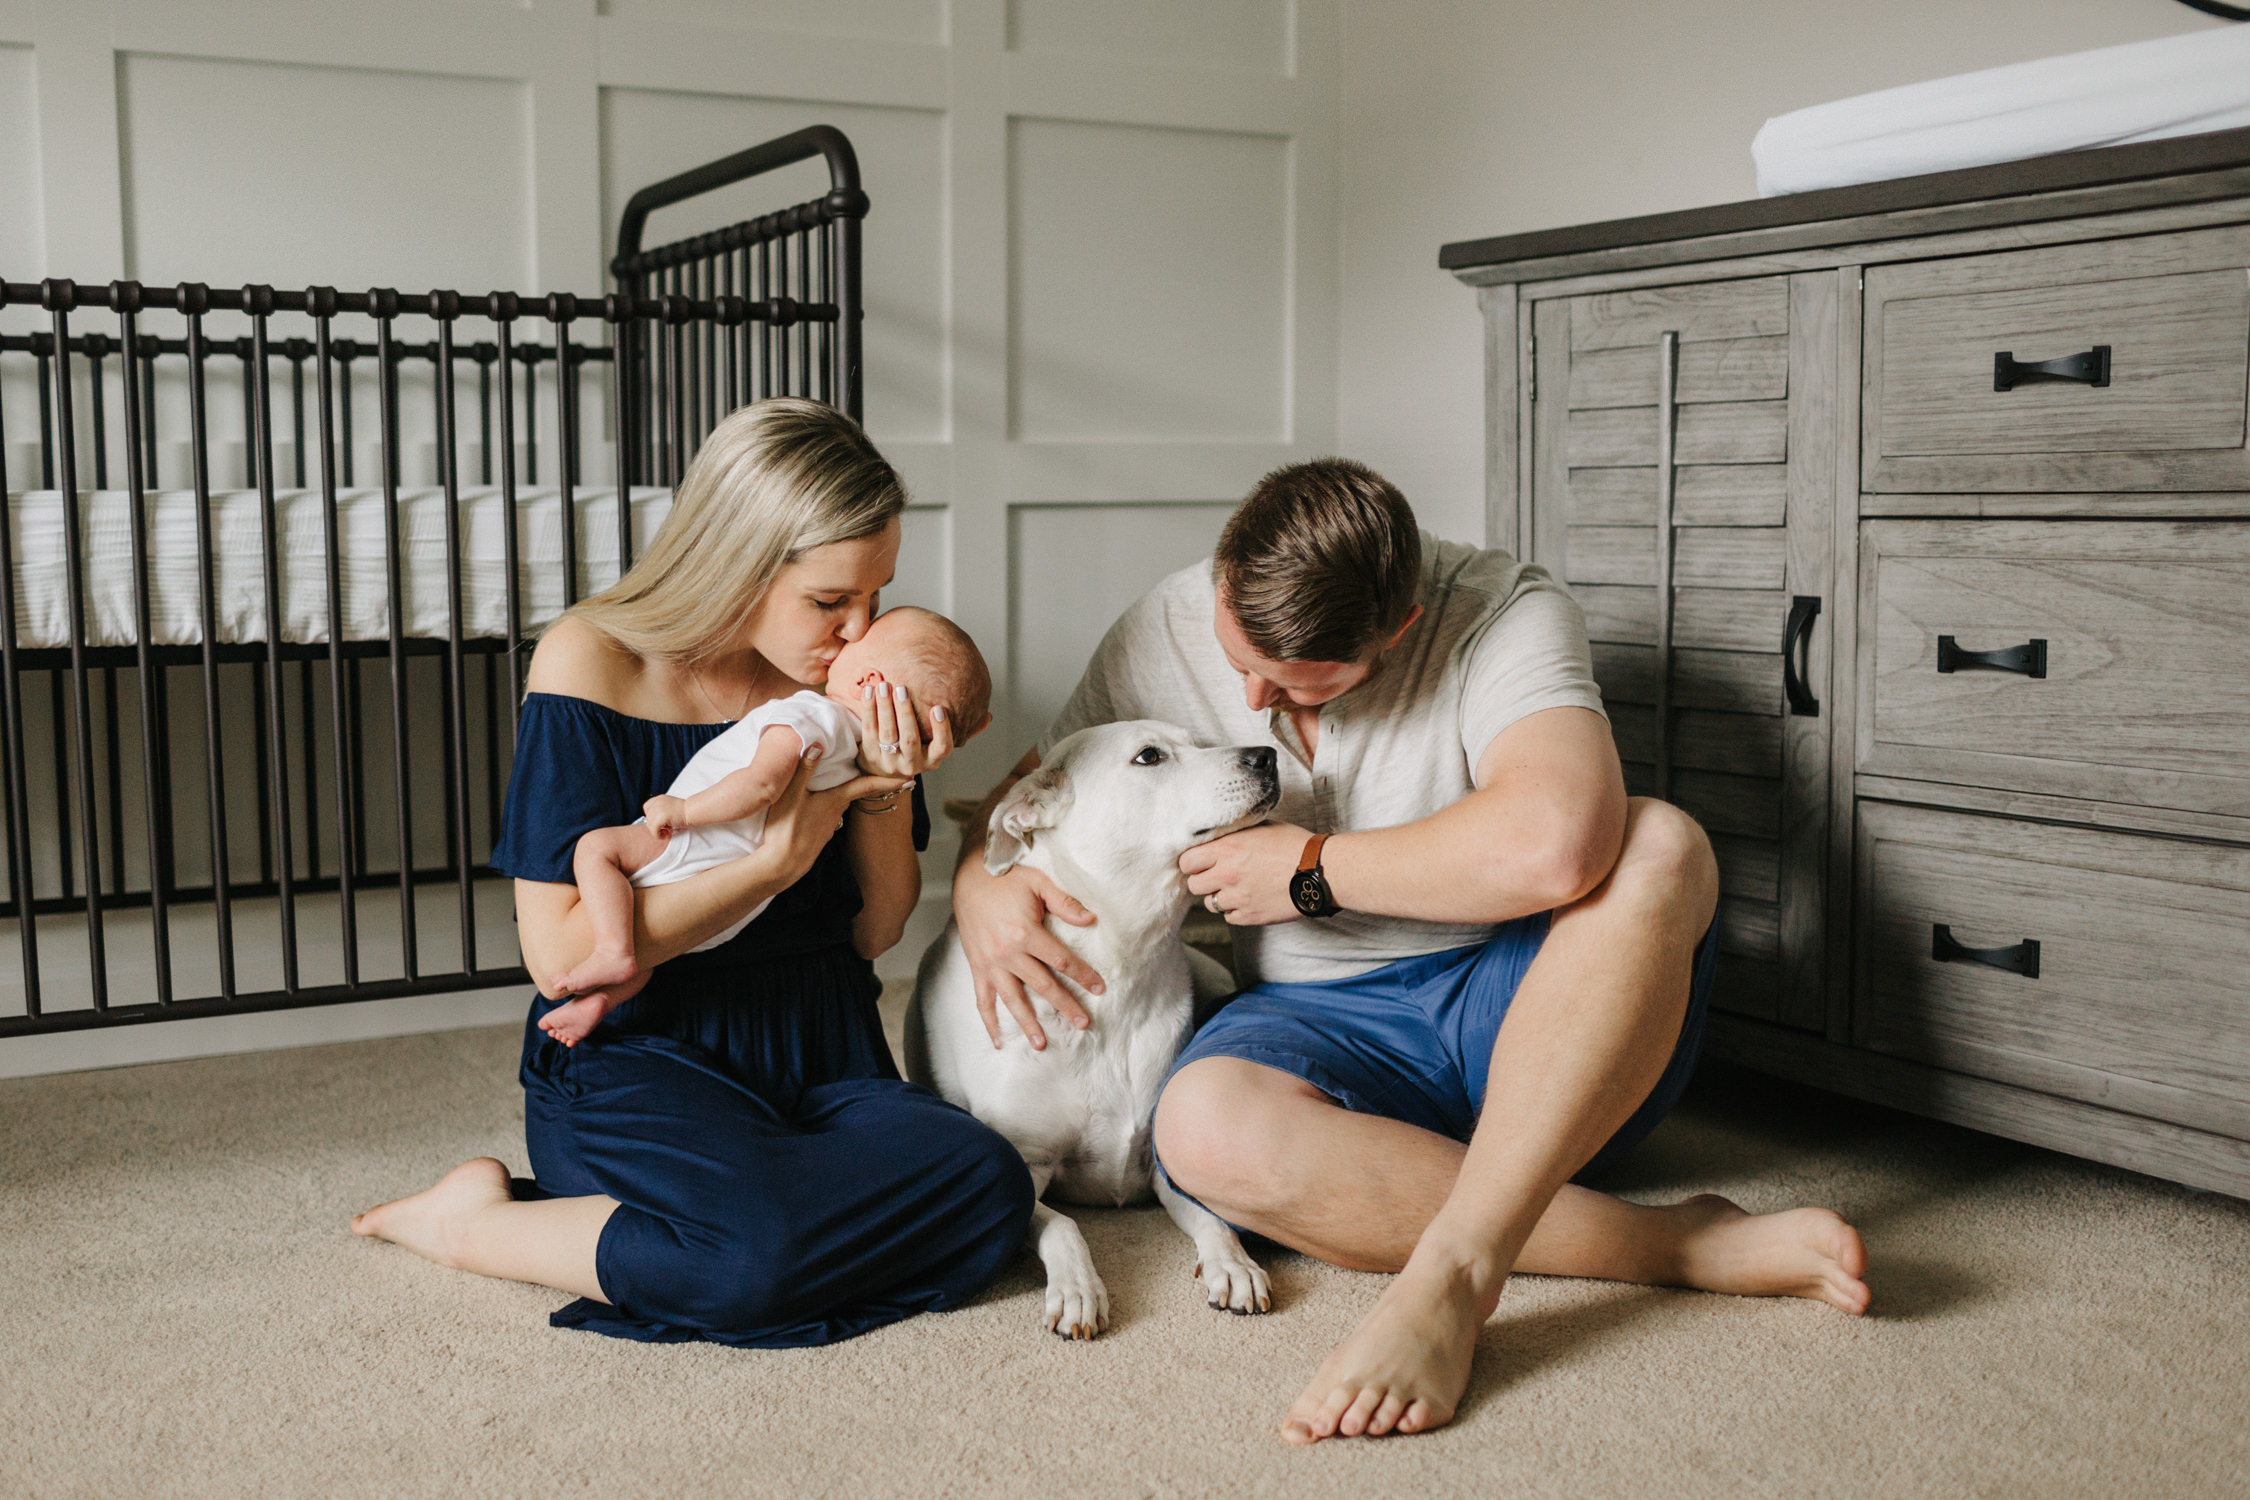 tampa-family-lifestyle-photographer-candid-natural-44